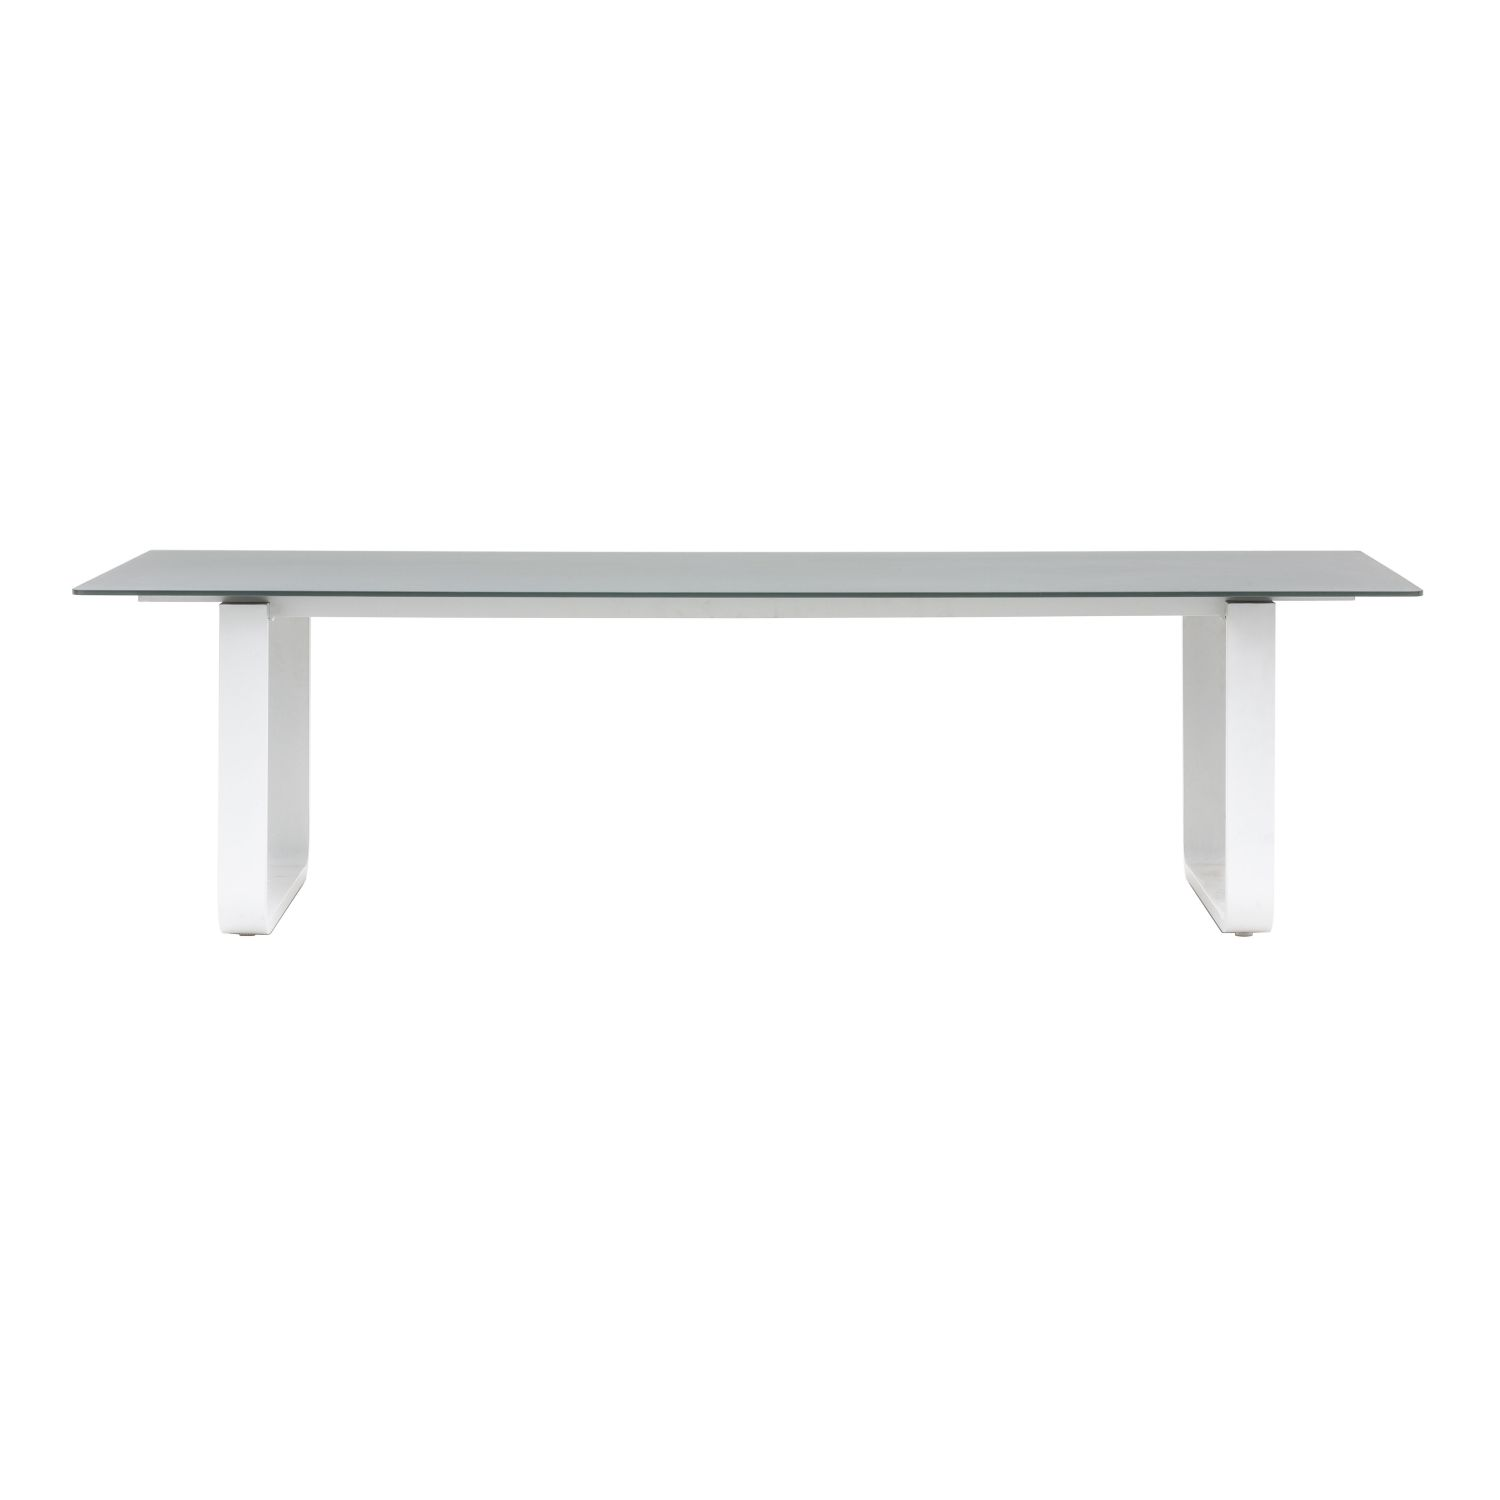 Pontoon Rectangular Dining Table from Domayne line